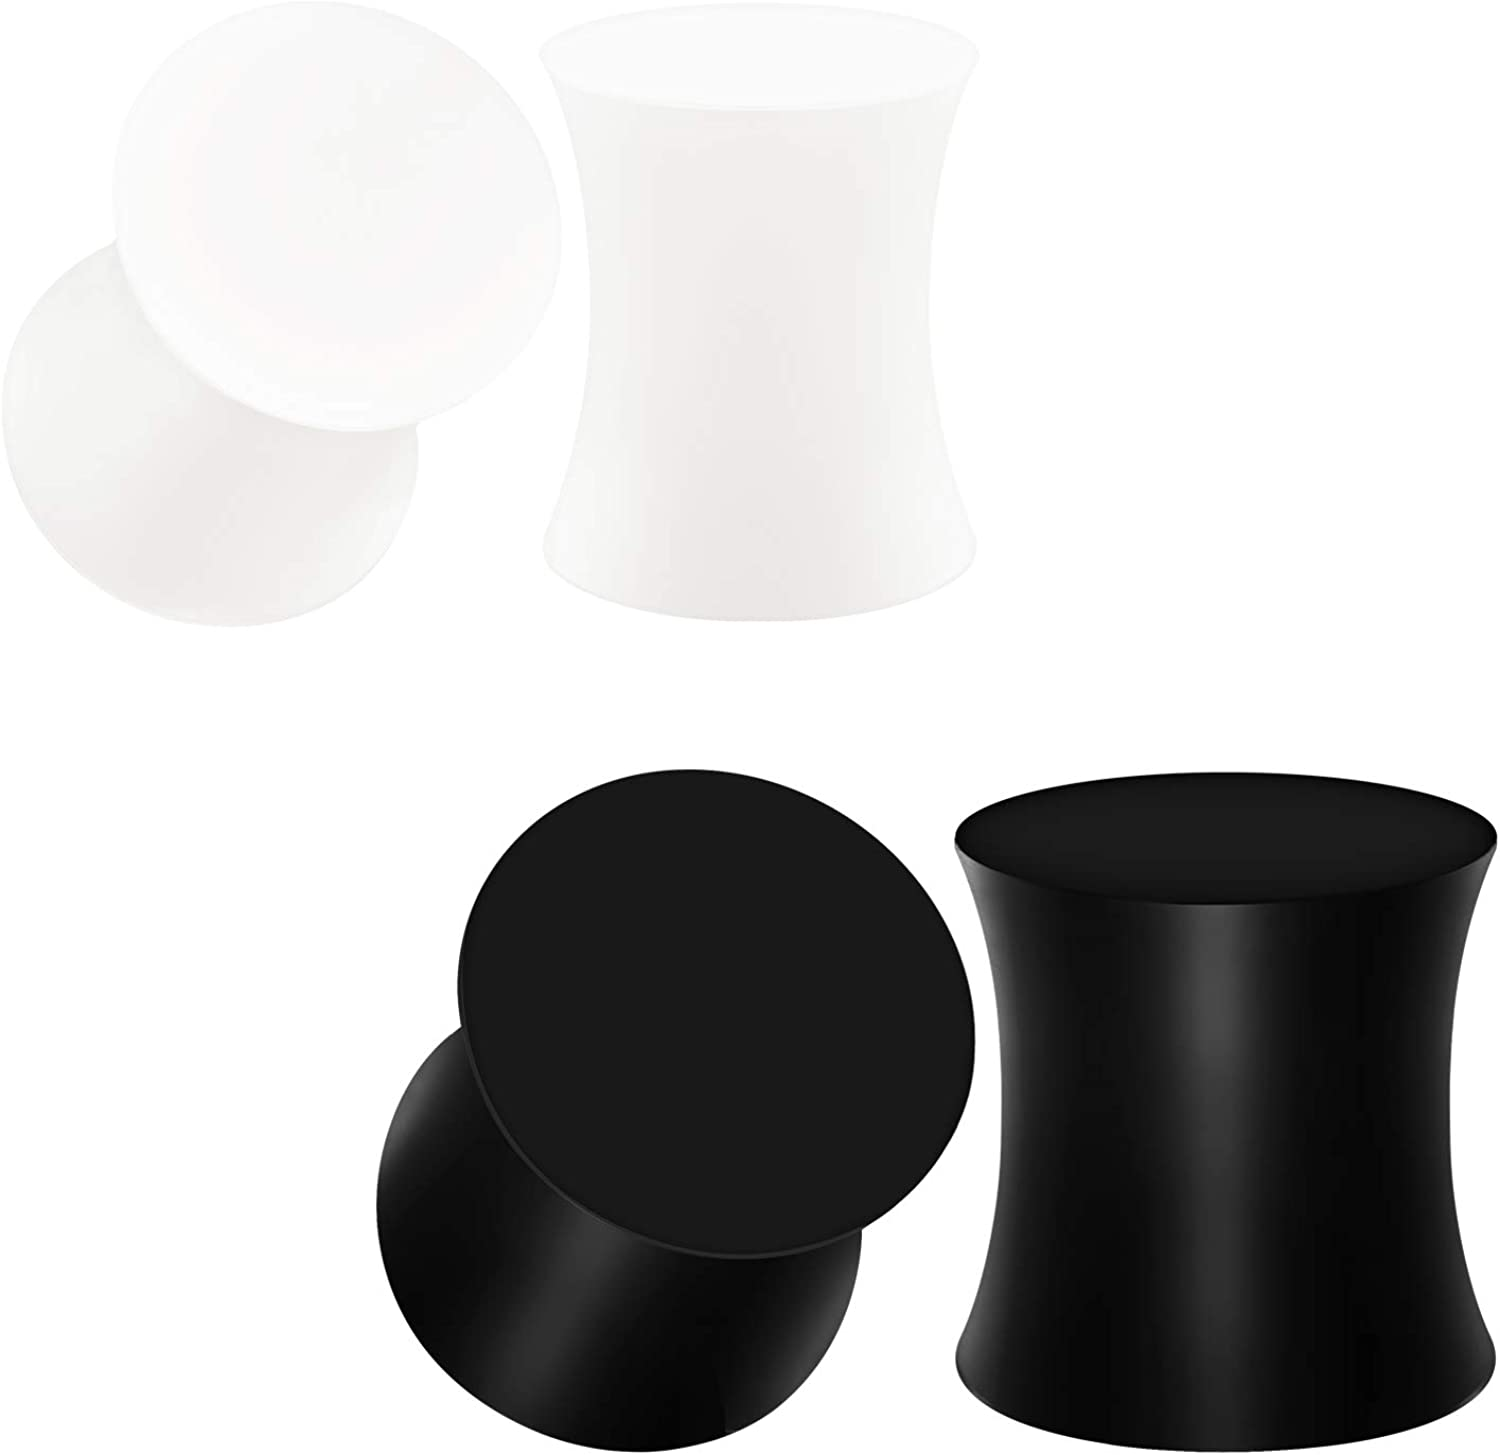 BIG GAUGES 2 Pairs Silicone Black White Solid Double Flared Piercing Jewelry Ear Stretcher Plugs Flesh Earring Lobe